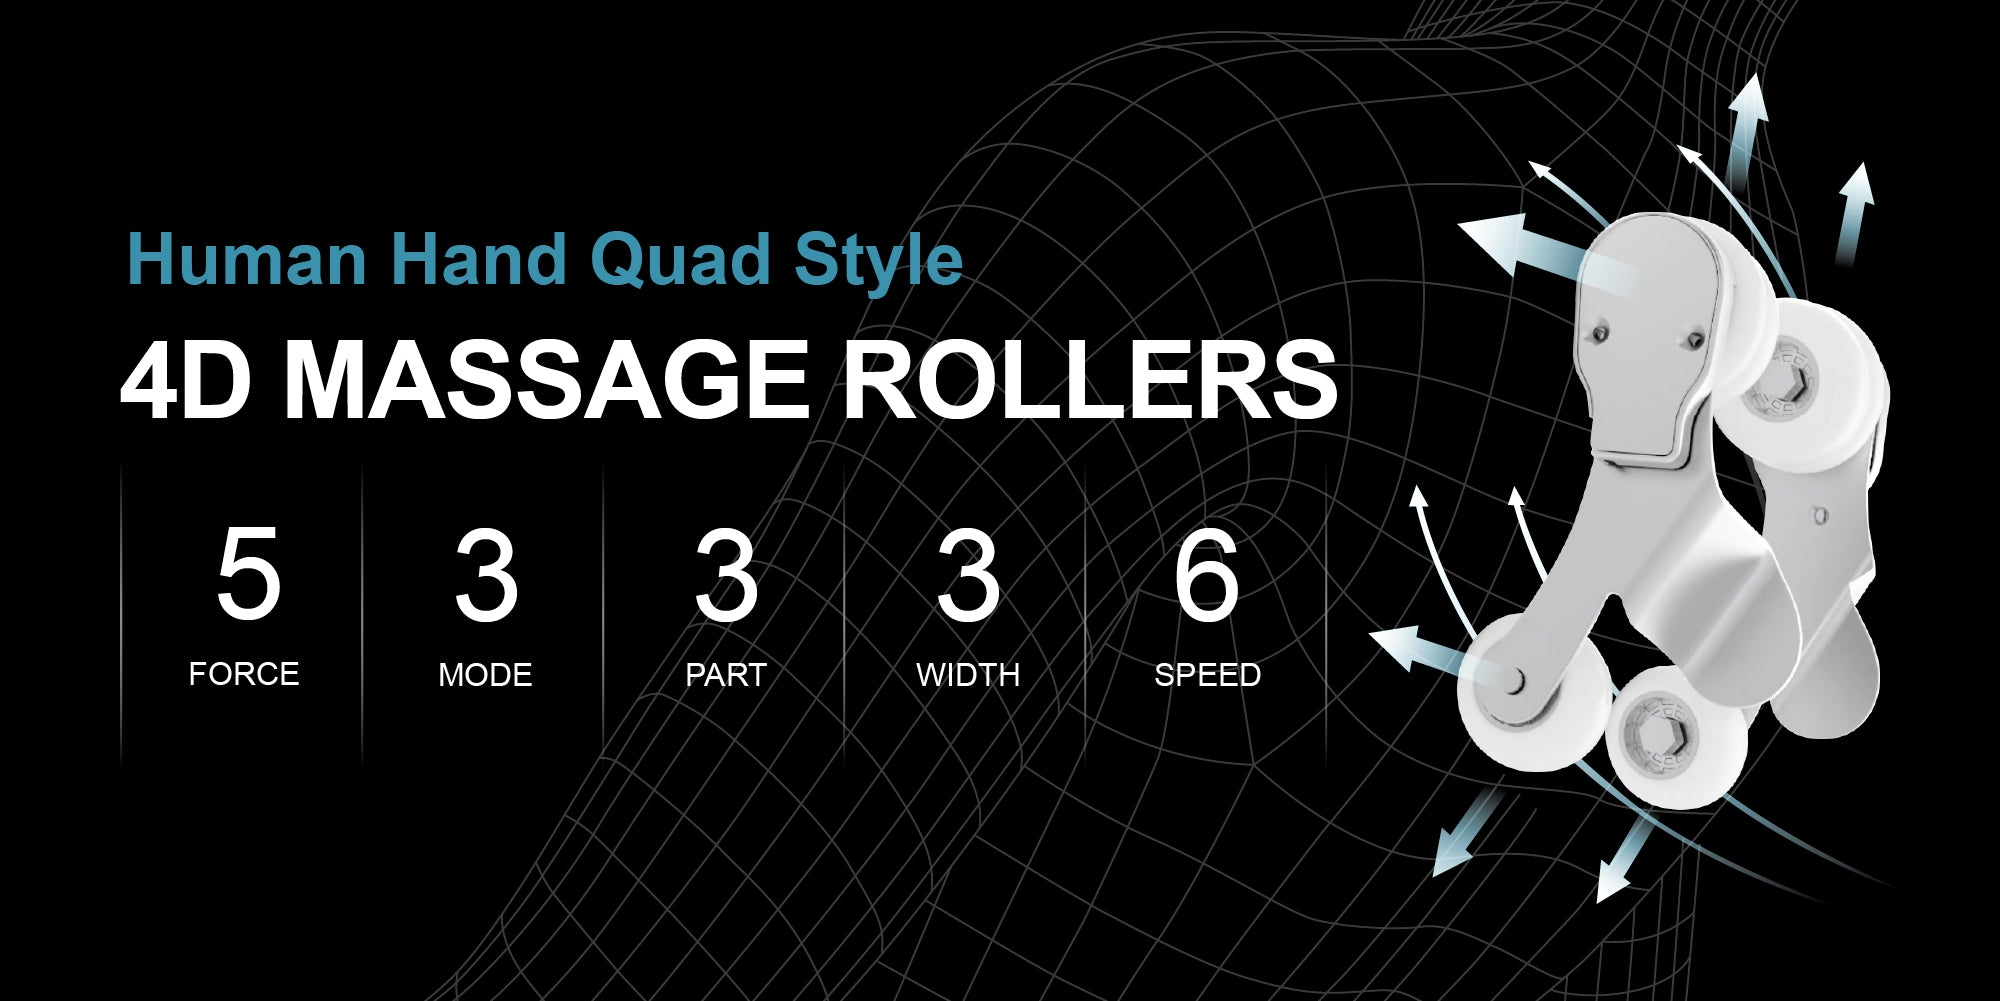 Human Hand Quad Style - 4D Massage Rollers